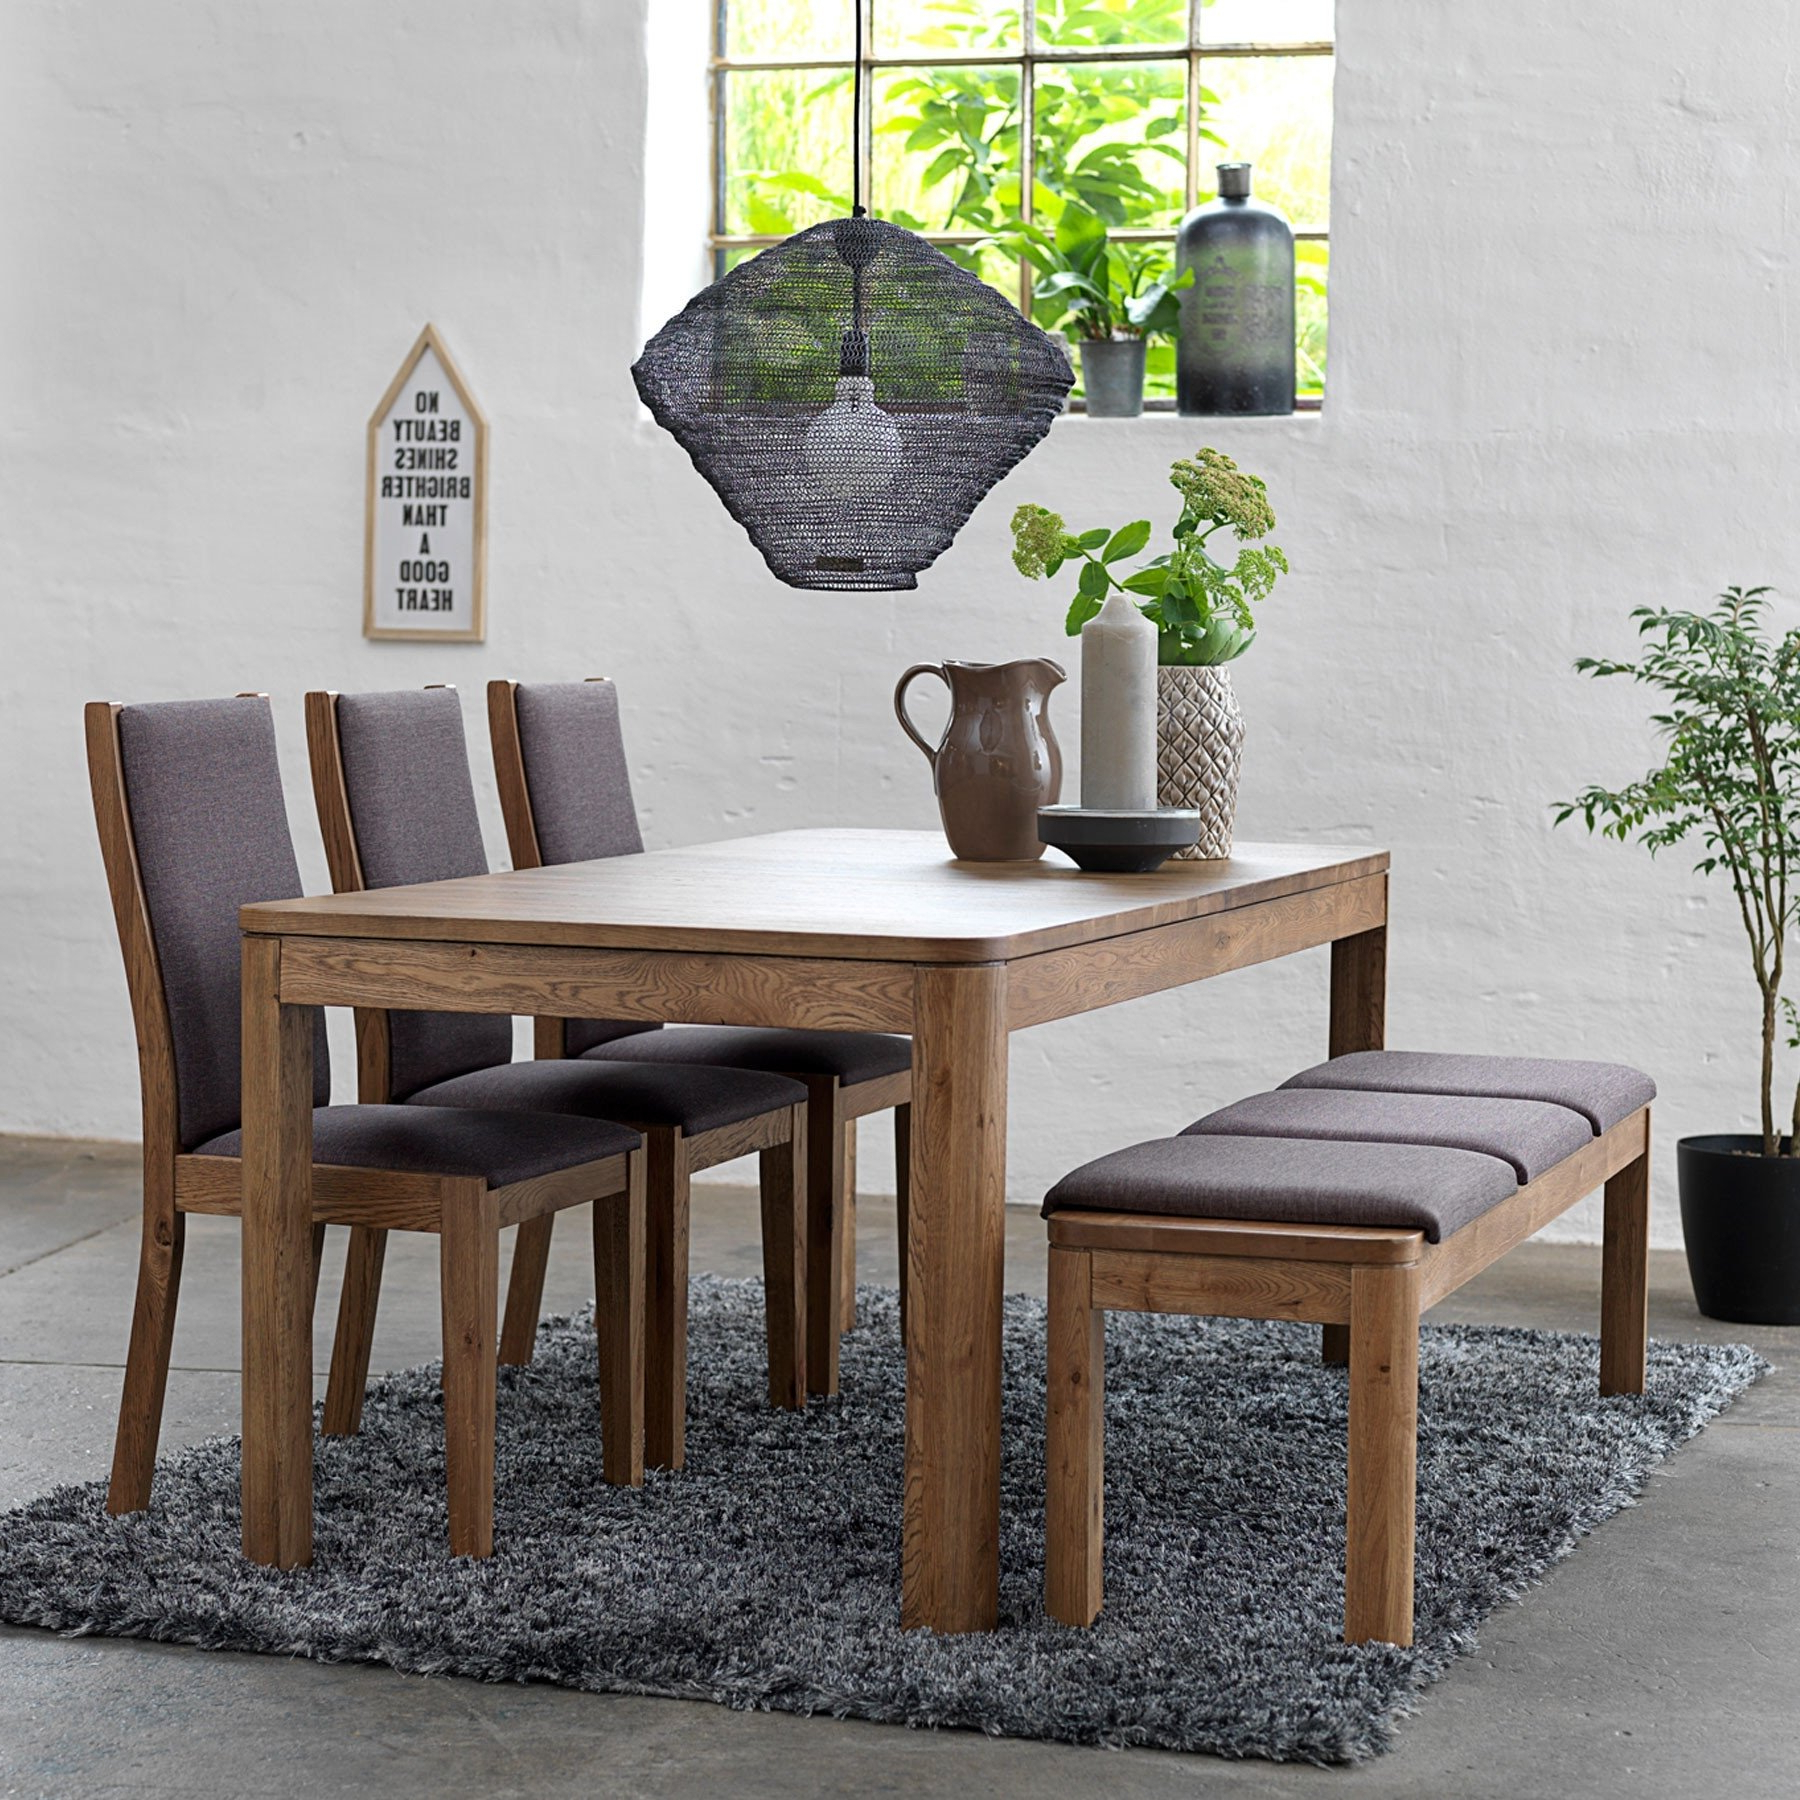 Most Up To Date 8 Seater Wood Contemporary Dining Tables With Extension Leaf In 3 Piece Dining Table And Chairs Property With Bench Visual (View 16 of 25)